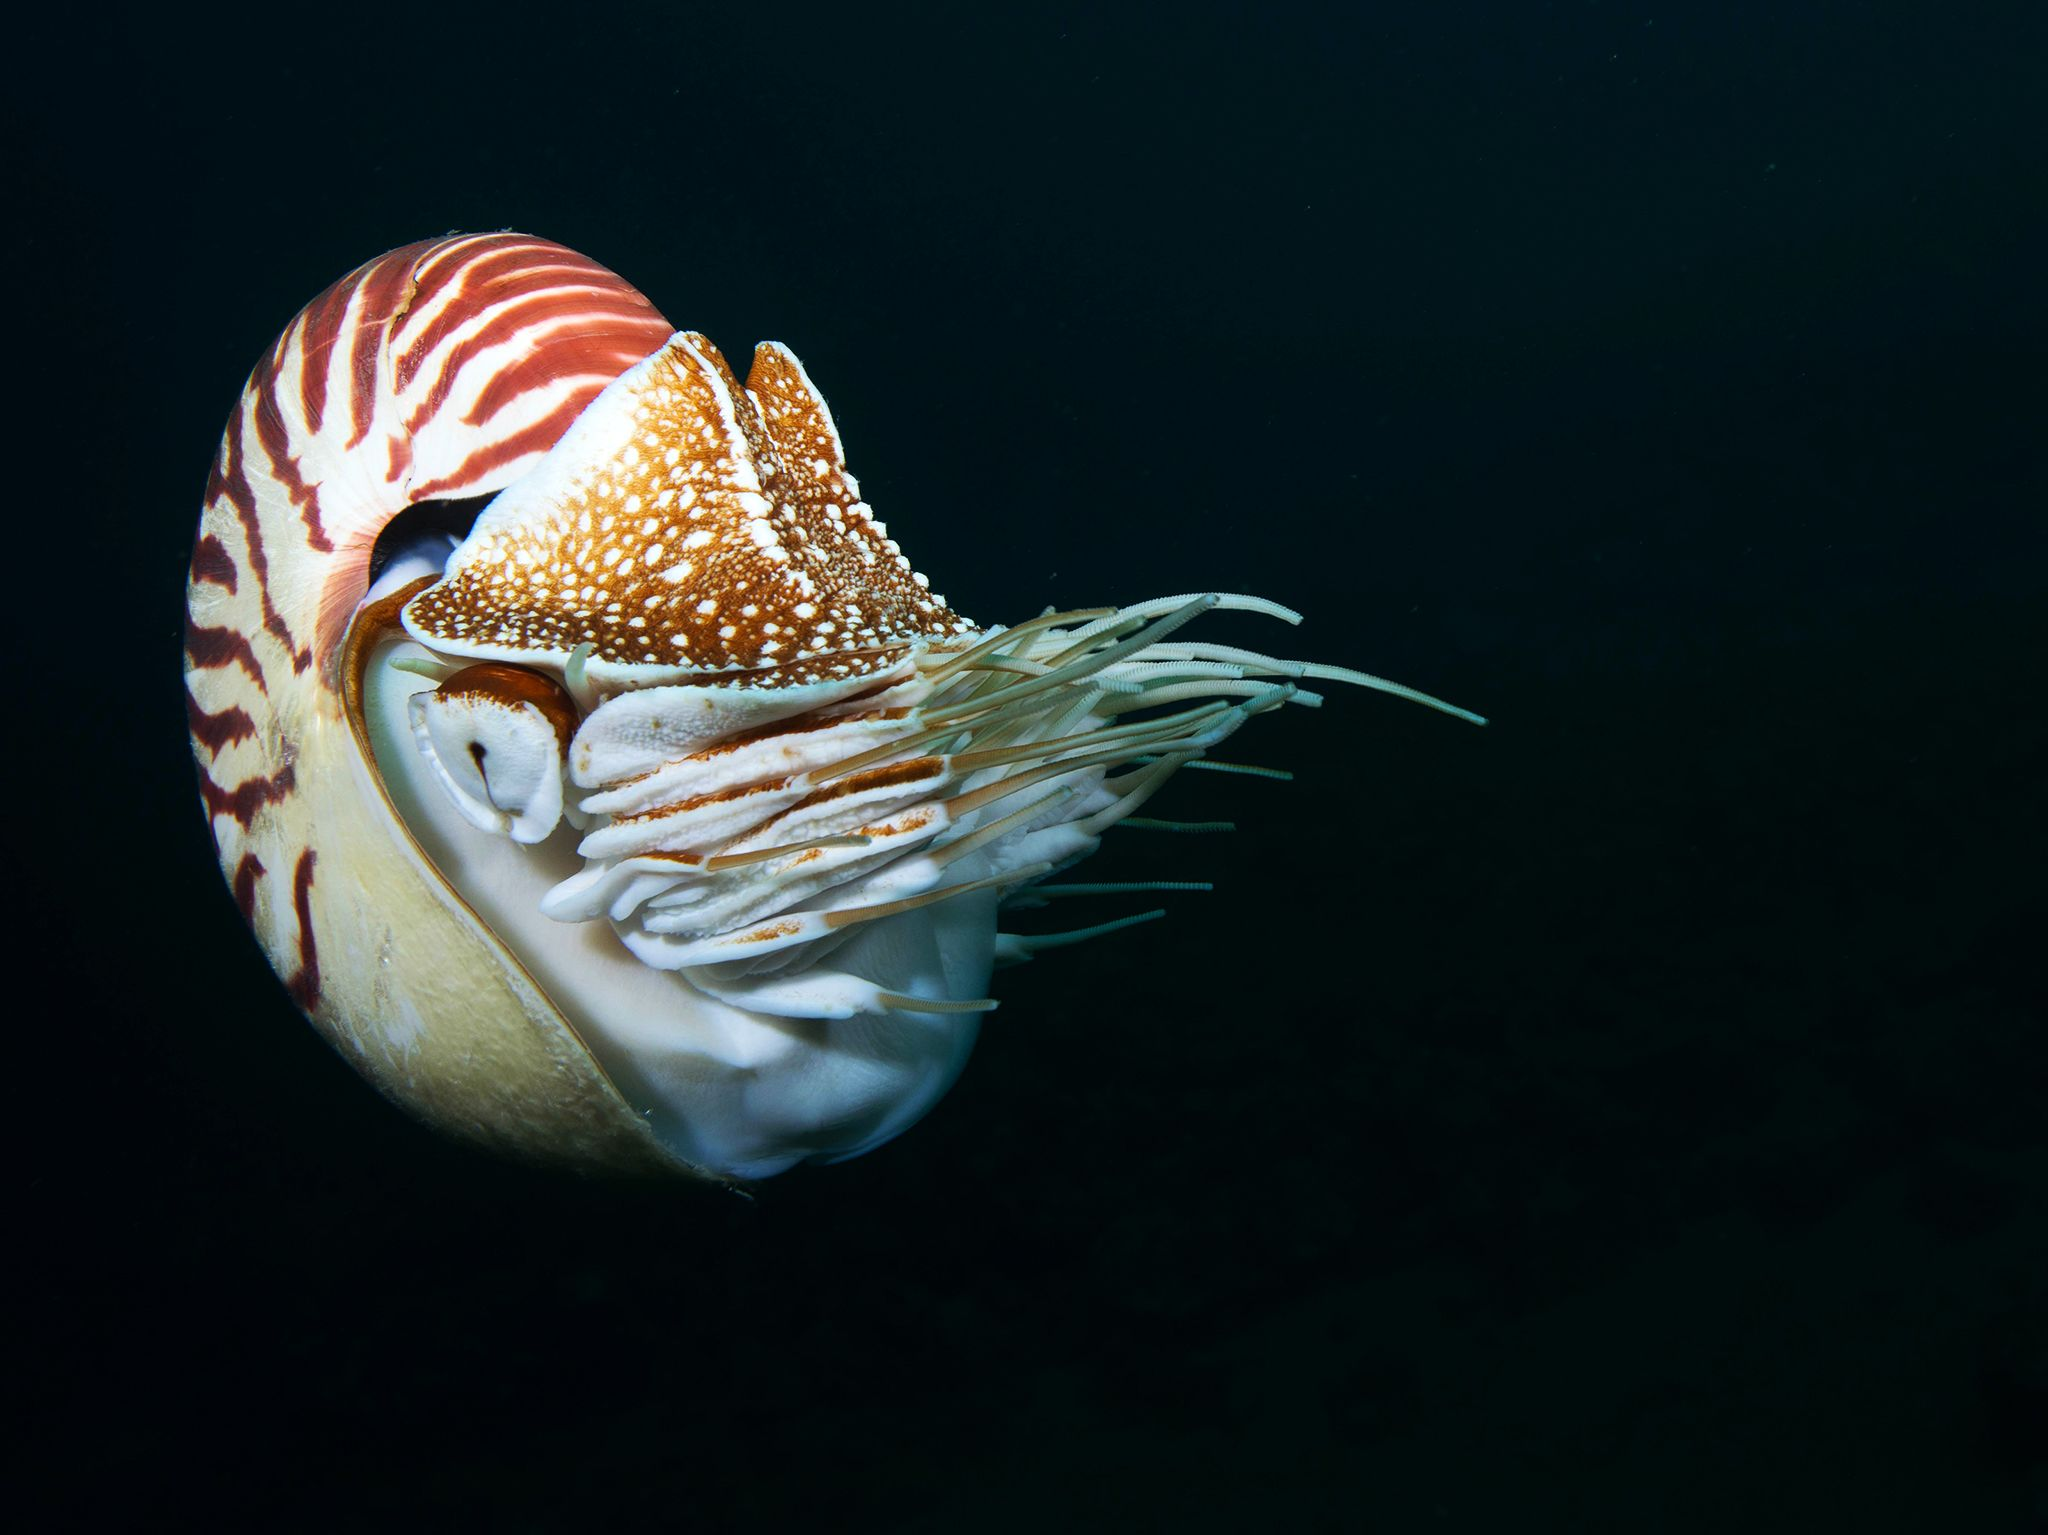 Chambered nautilus. This image is from Untamed Philippines. [Photo of the day - آوریل 2018]